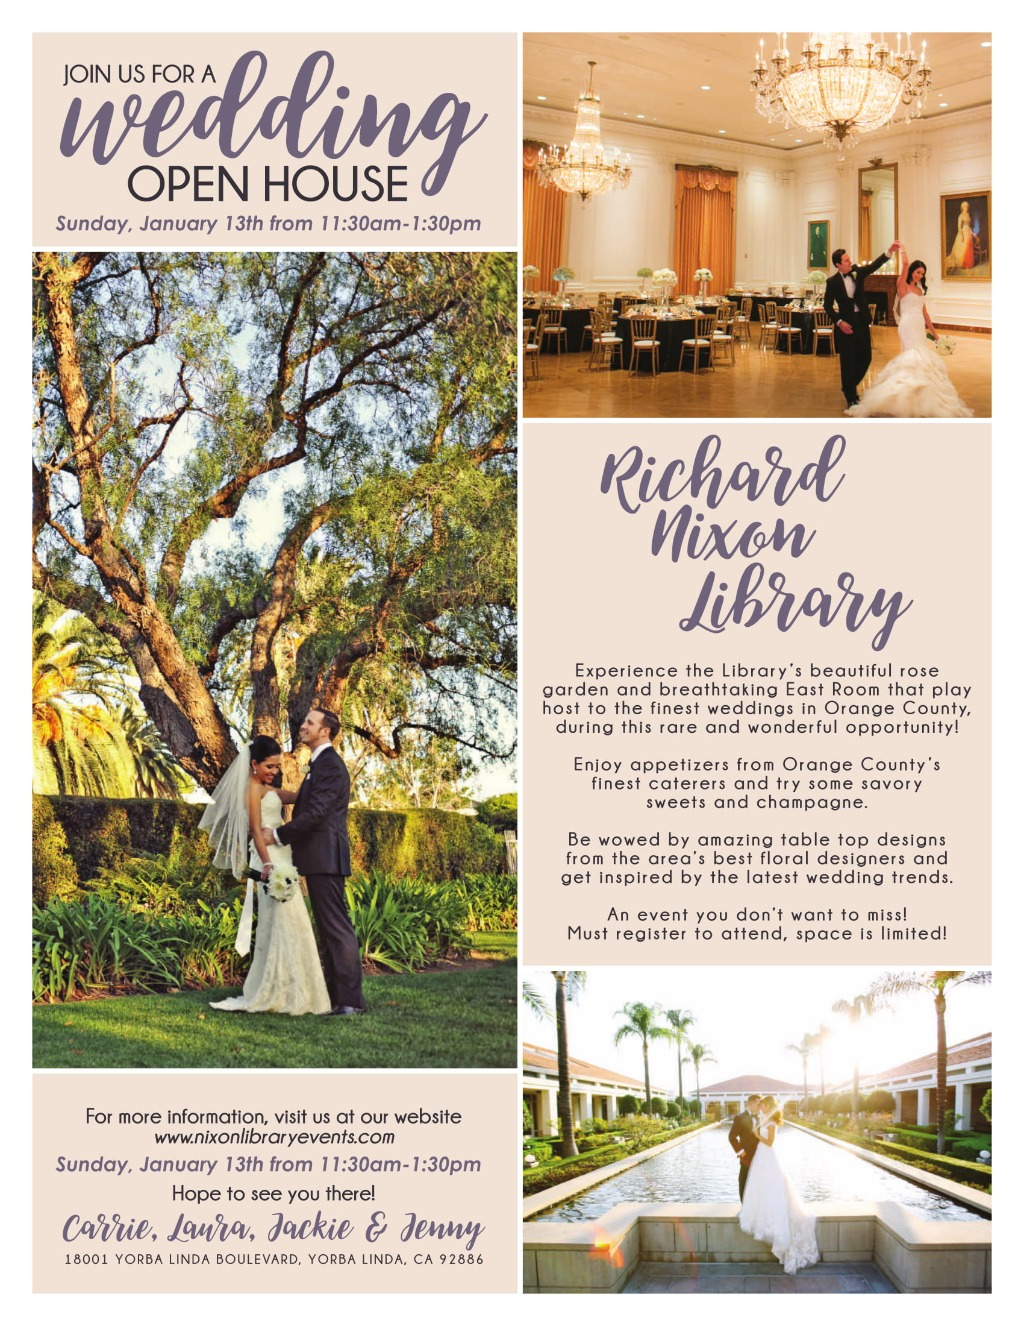 Wedding Open House at the Richard Nixon Library